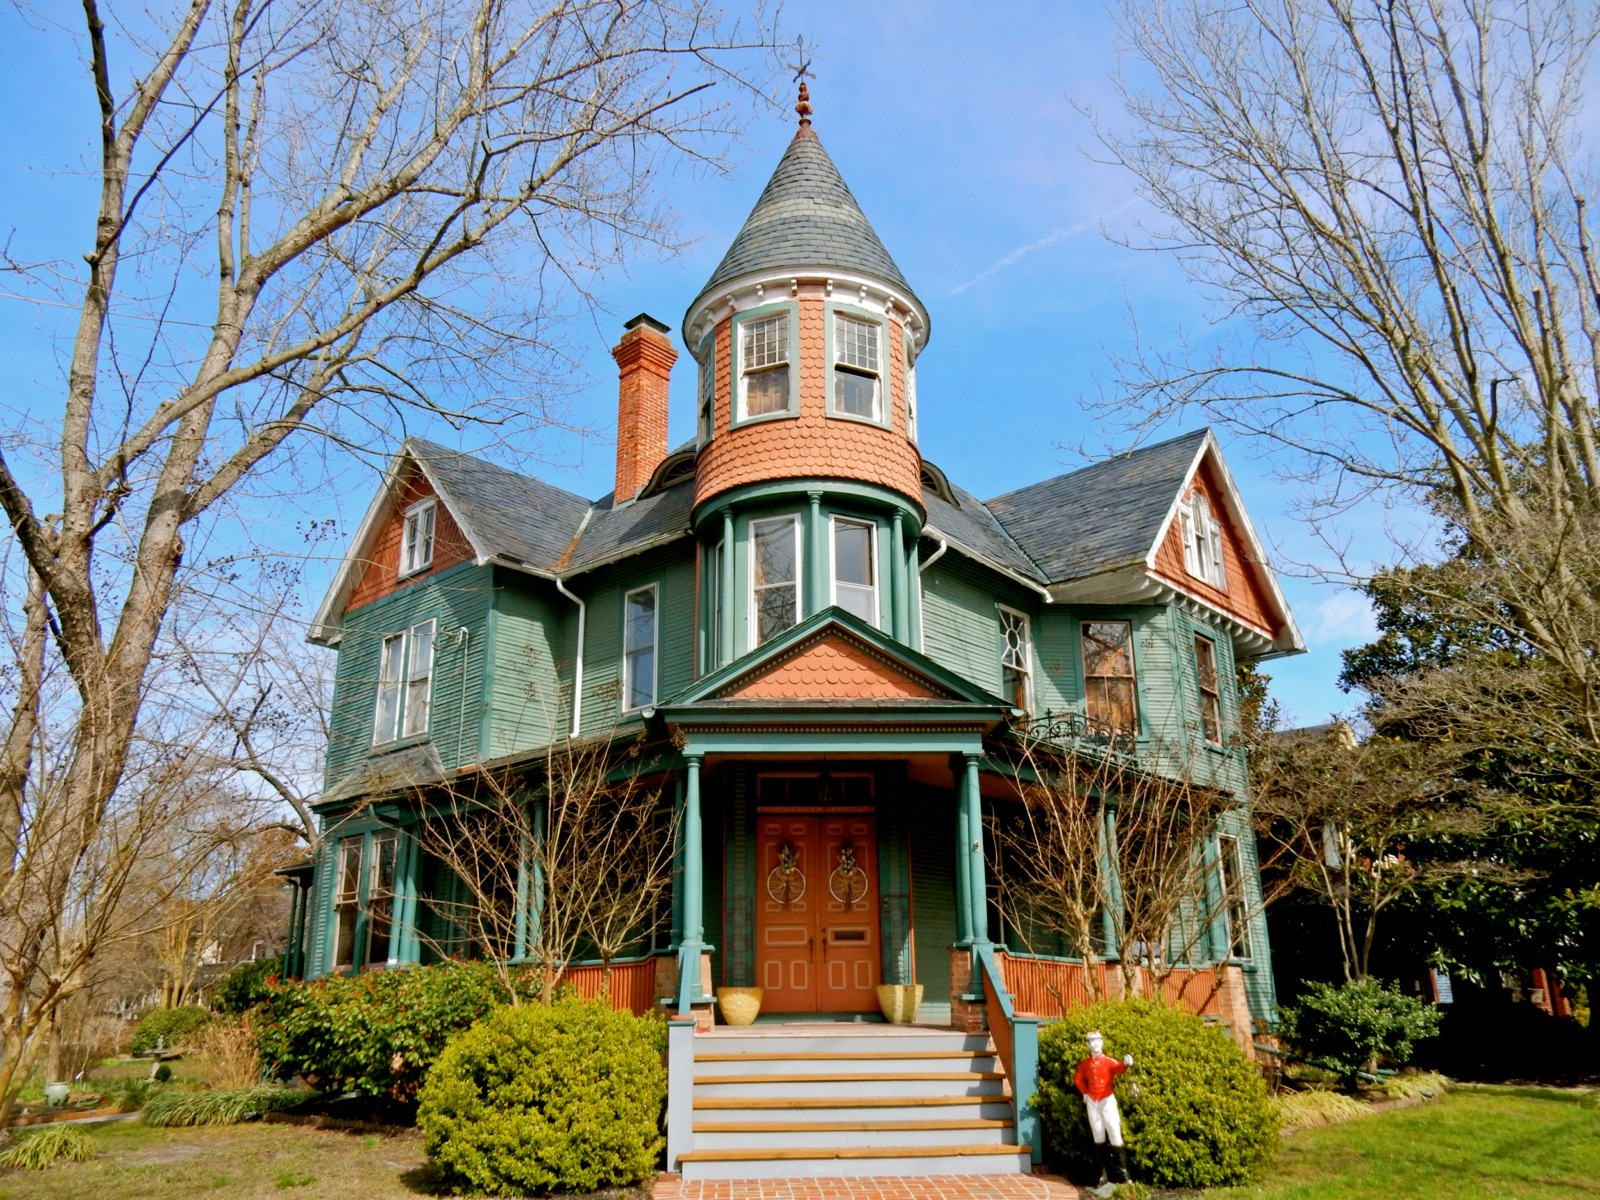 Victorian house in Wicomico County